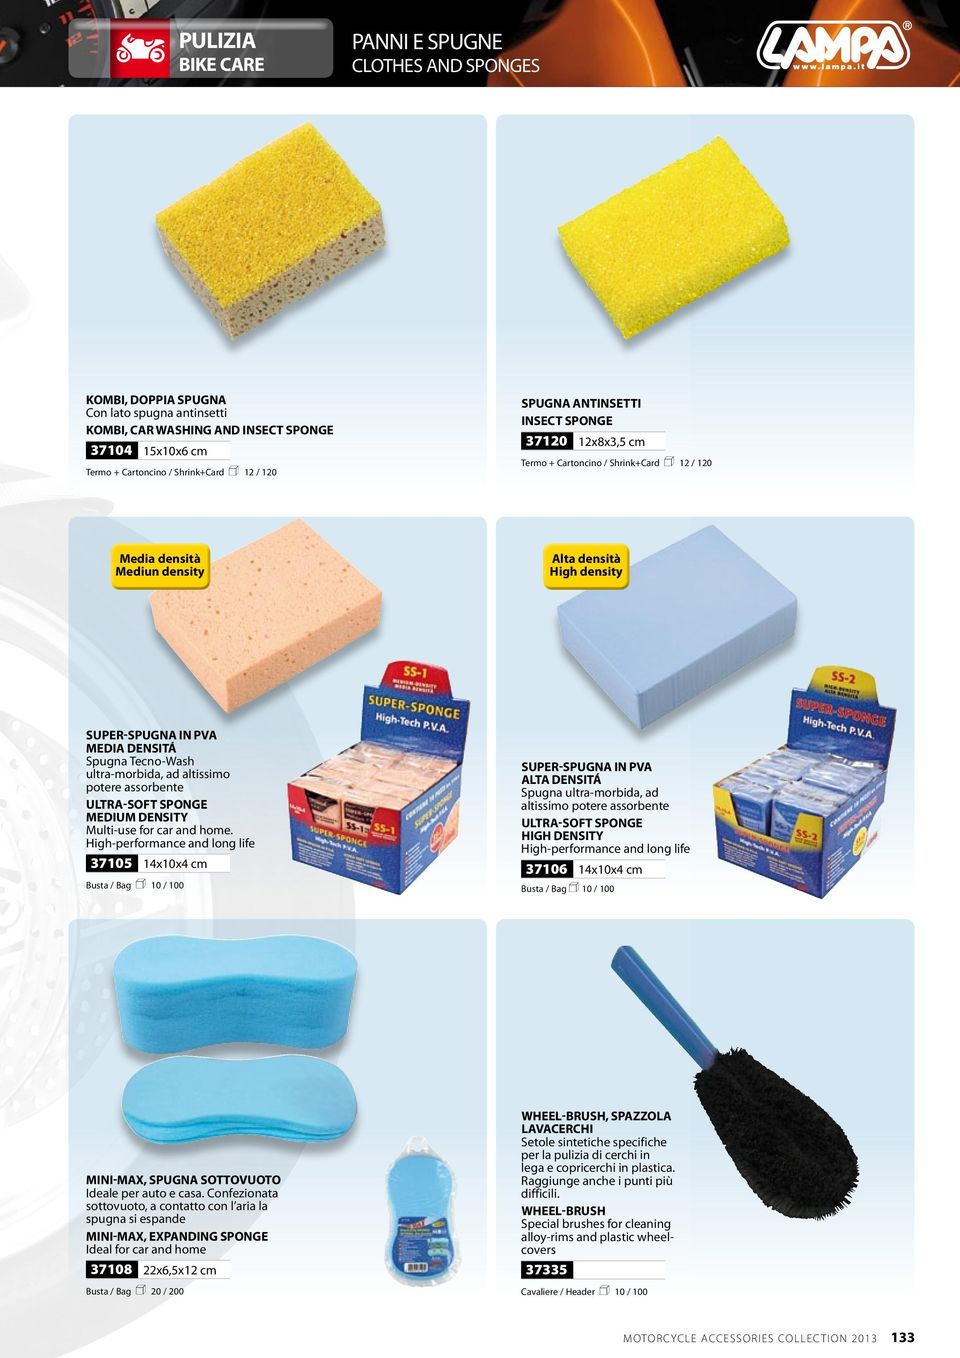 ad altissimo potere assorbente Ultra-soft sponge medium density Multi-use for car and home.